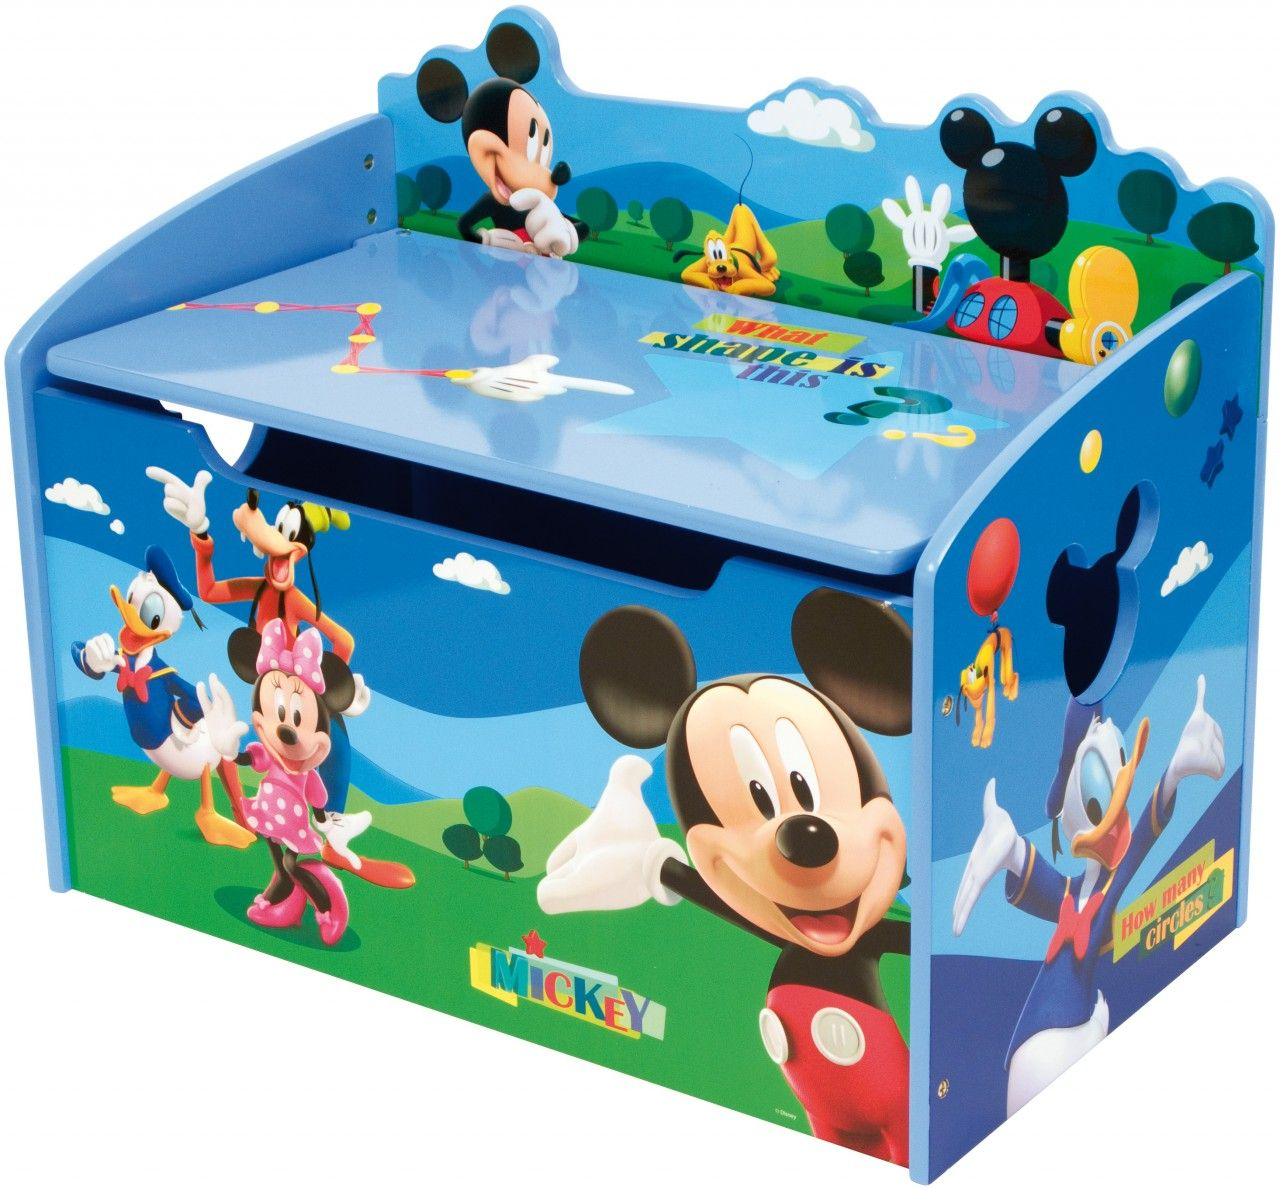 Mickey Mouse Clubhouse Toy Box Clubs Hotel Para Gatos Uc